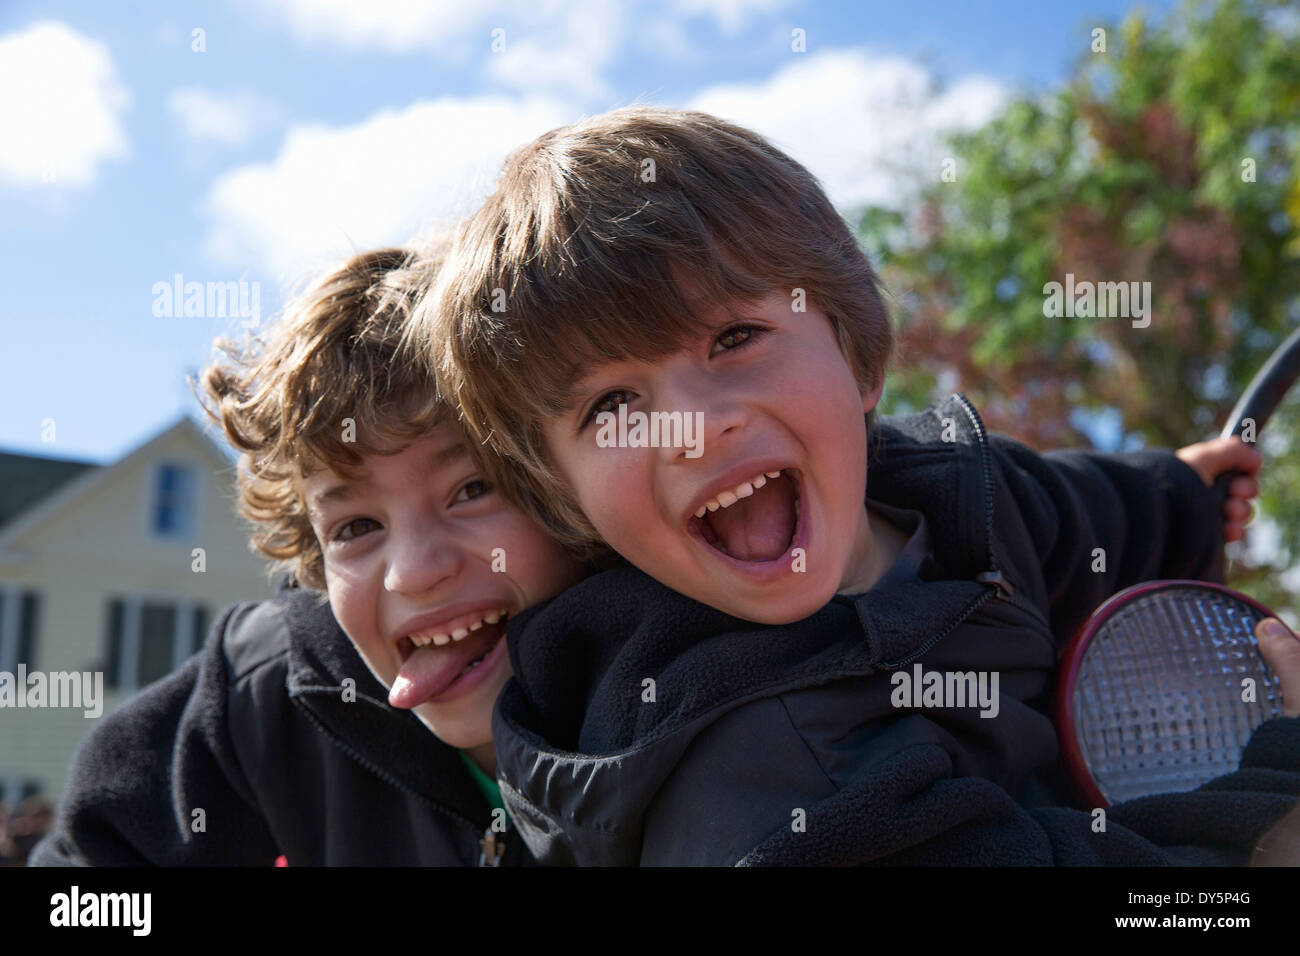 Two brothers sticking out tongues and fooling around - Stock Image